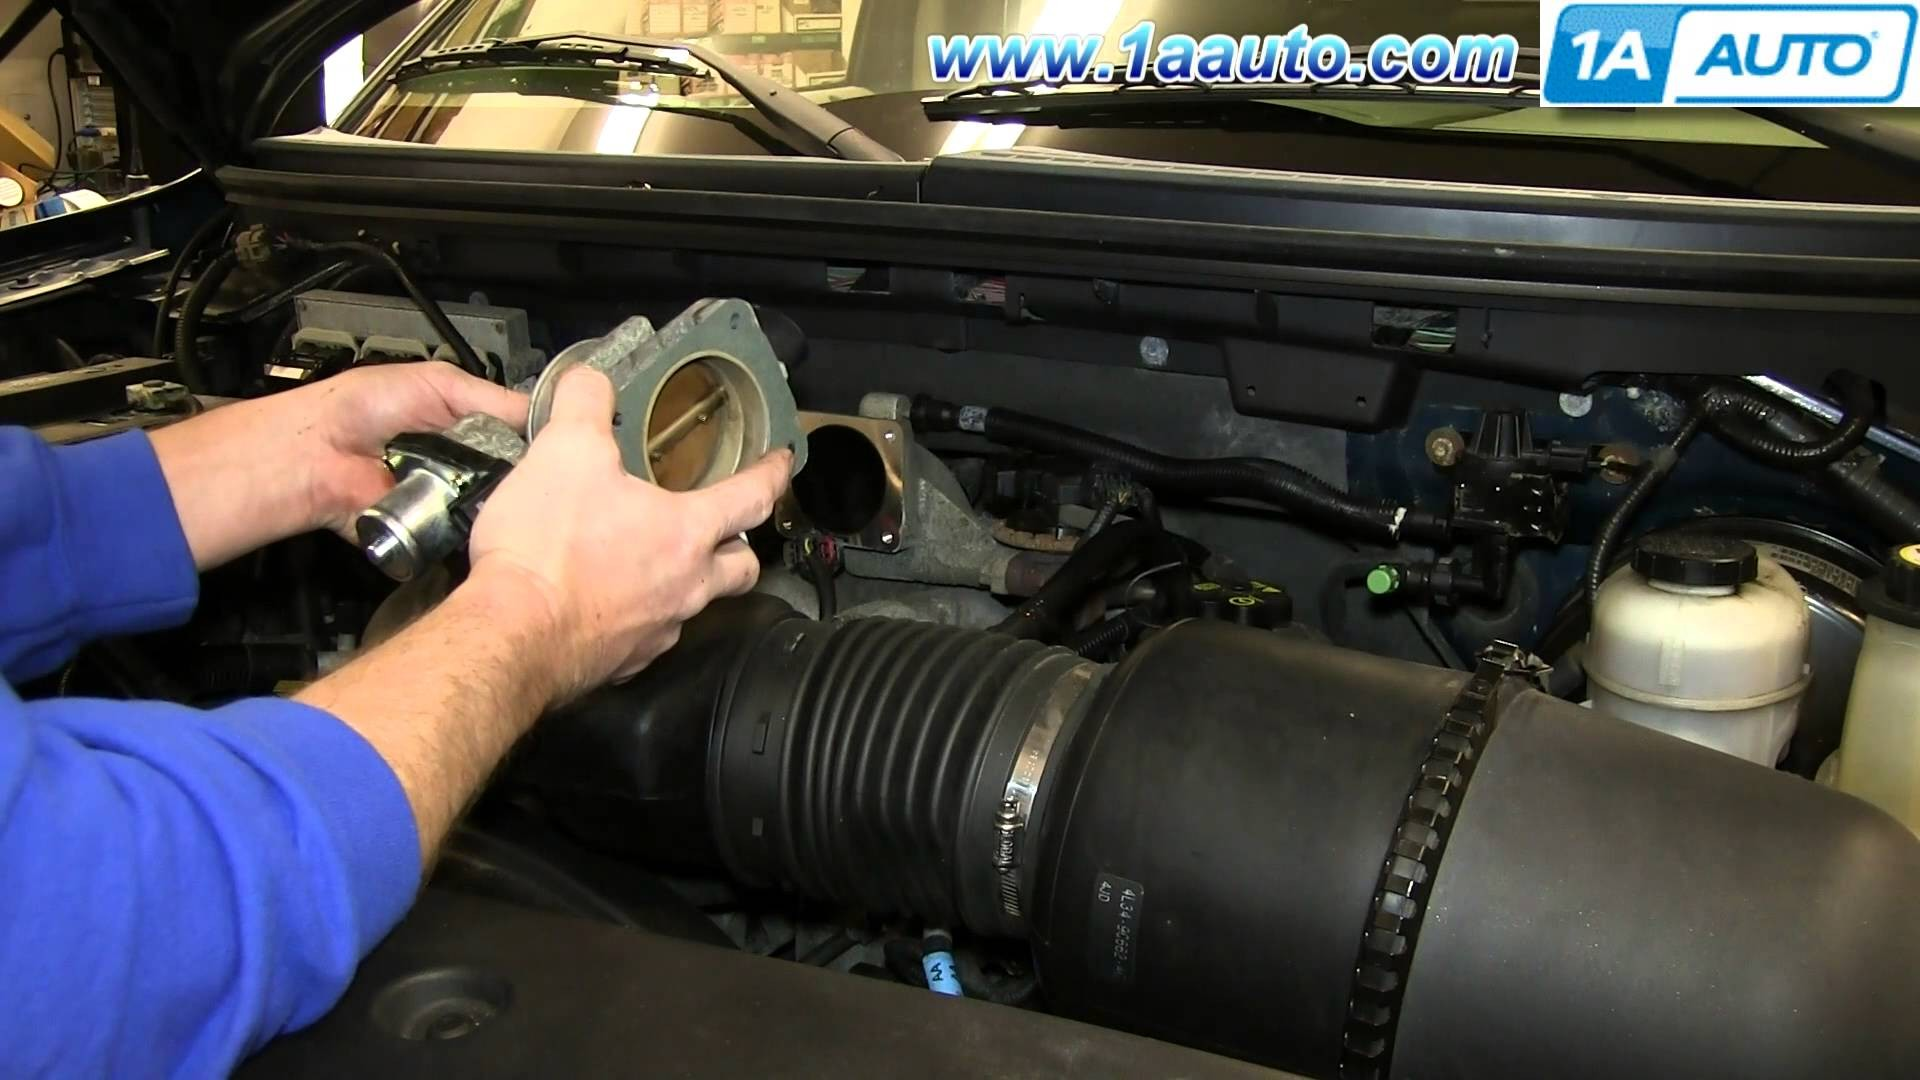 Ford 5 4 Triton Engine Diagram How to Install Replace Engine Throttle Body 2005 06 ford F150 4 6l Of Ford 5 4 Triton Engine Diagram